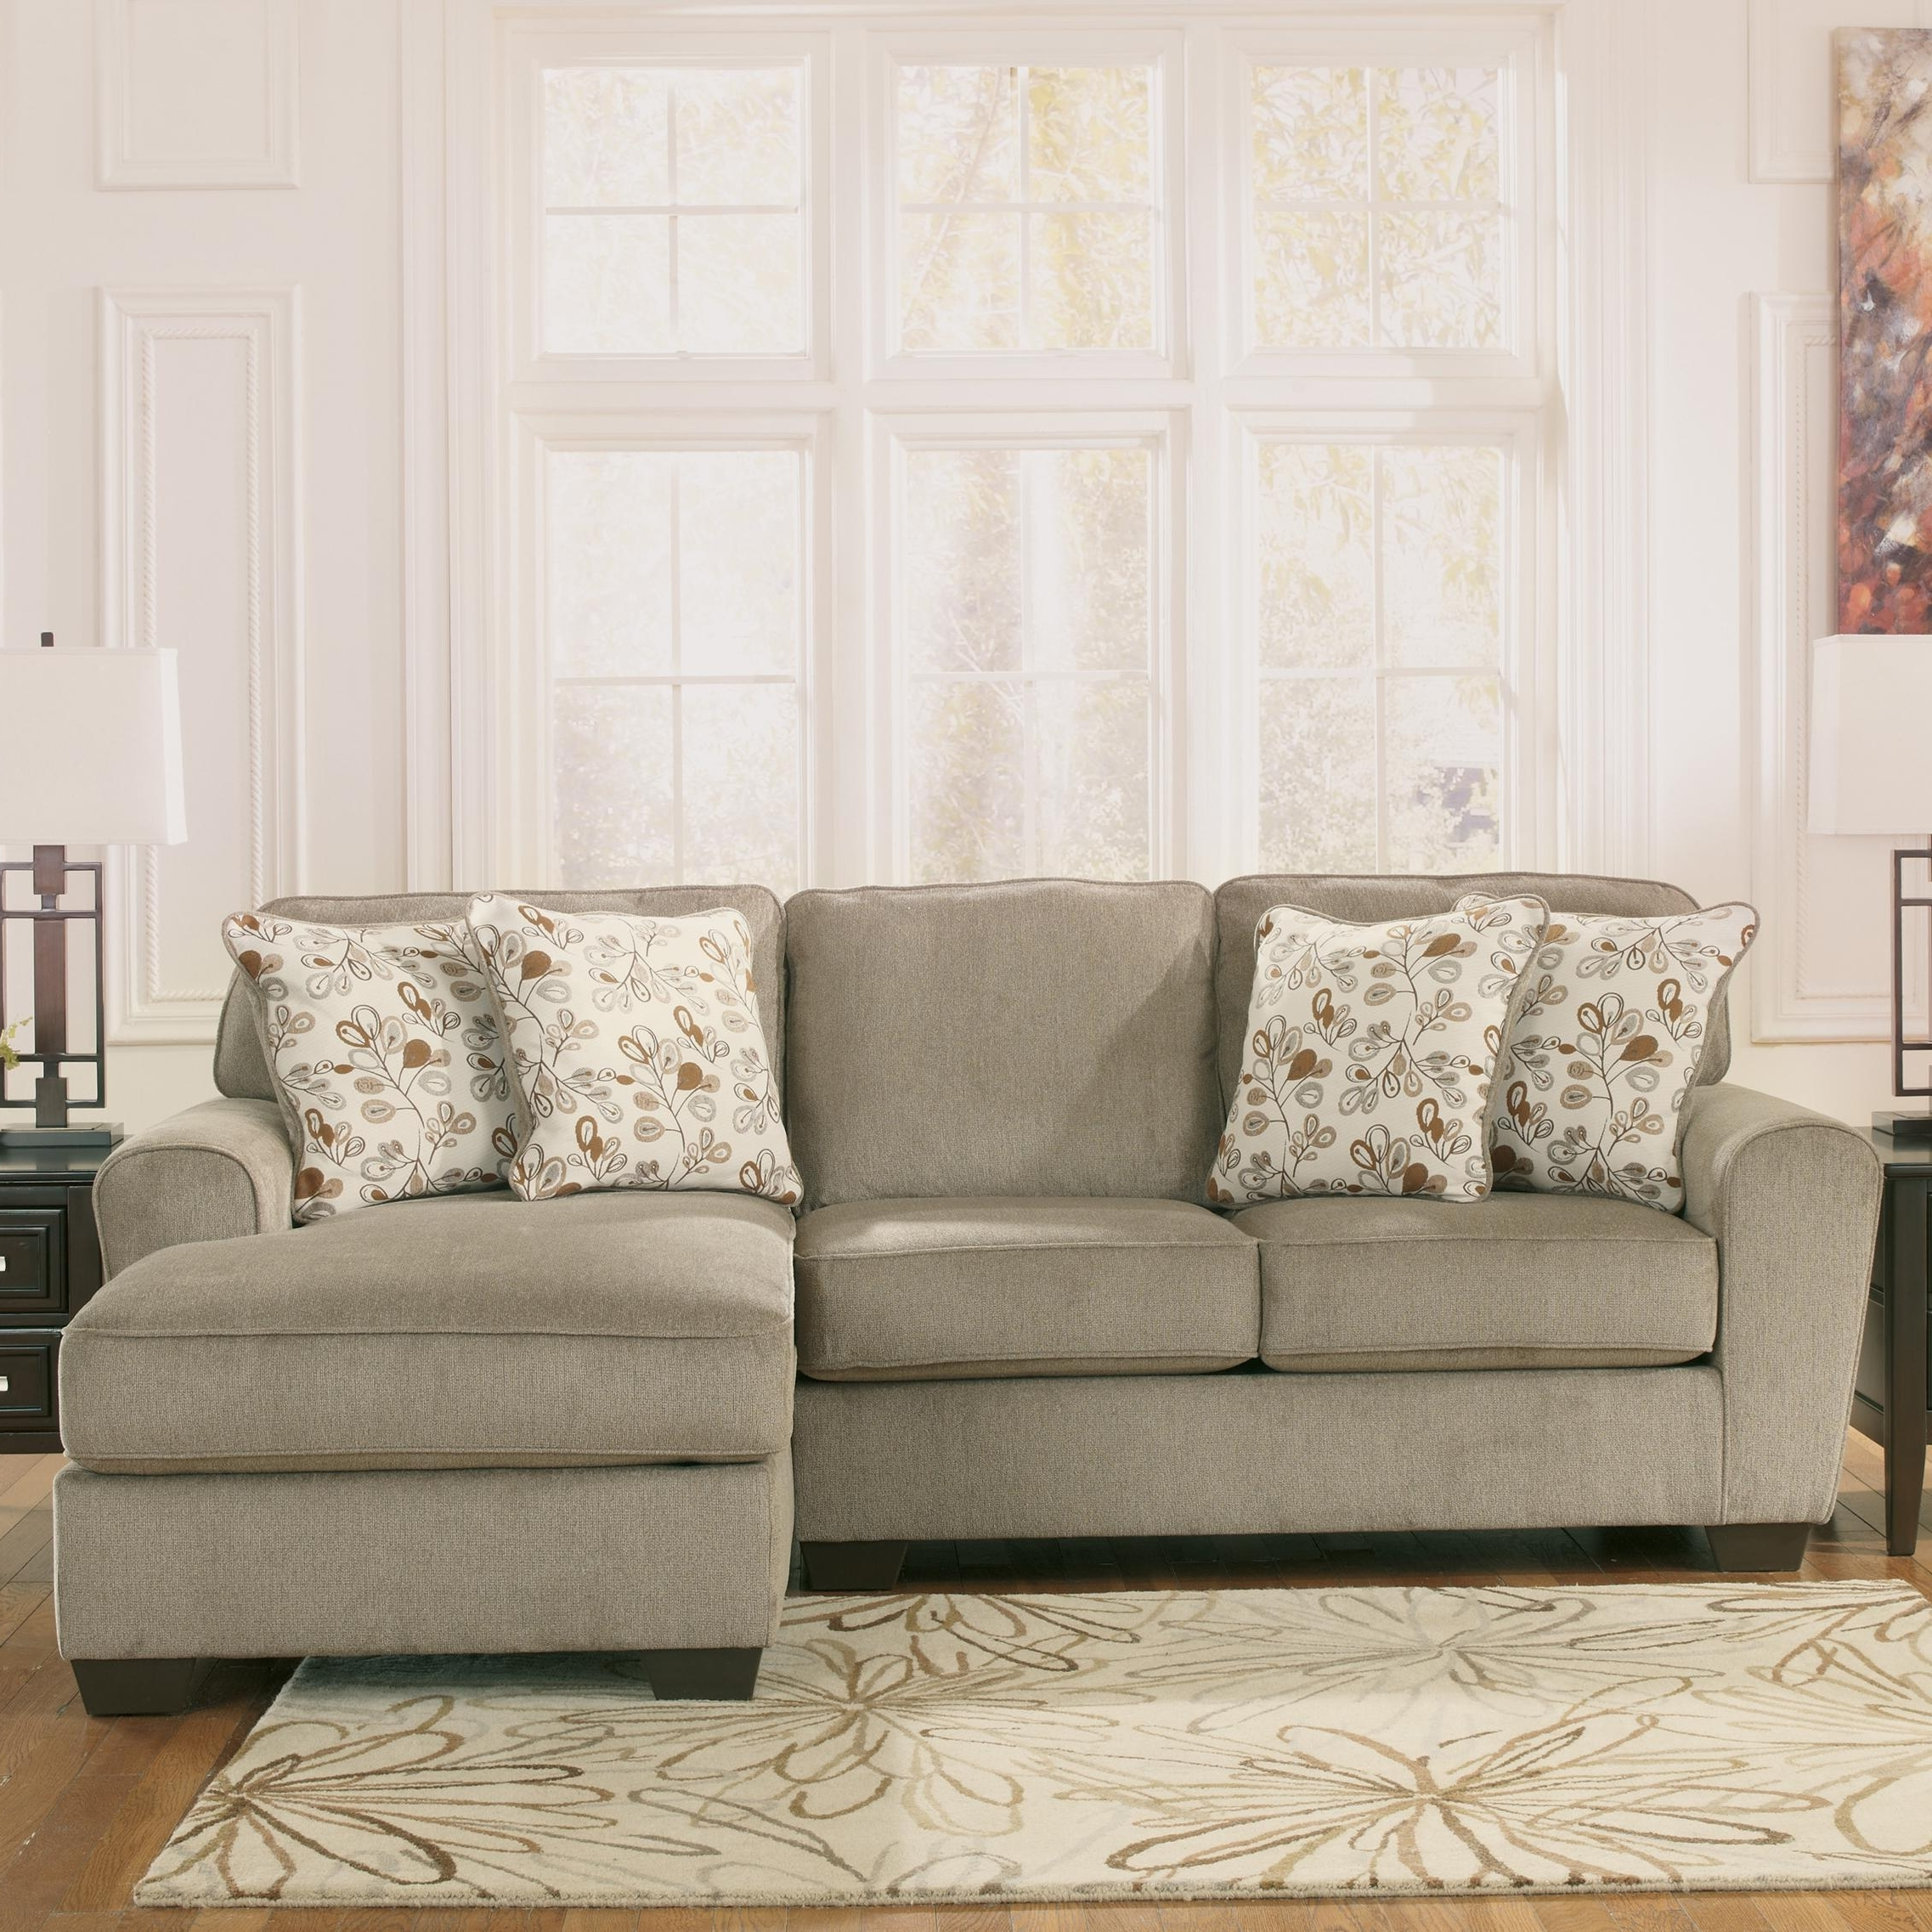 Ashley Furniture Patola Park – Patina 2 Piece Sectional With Right For Most Recent Ashley Furniture Sectionals With Chaise (View 8 of 15)